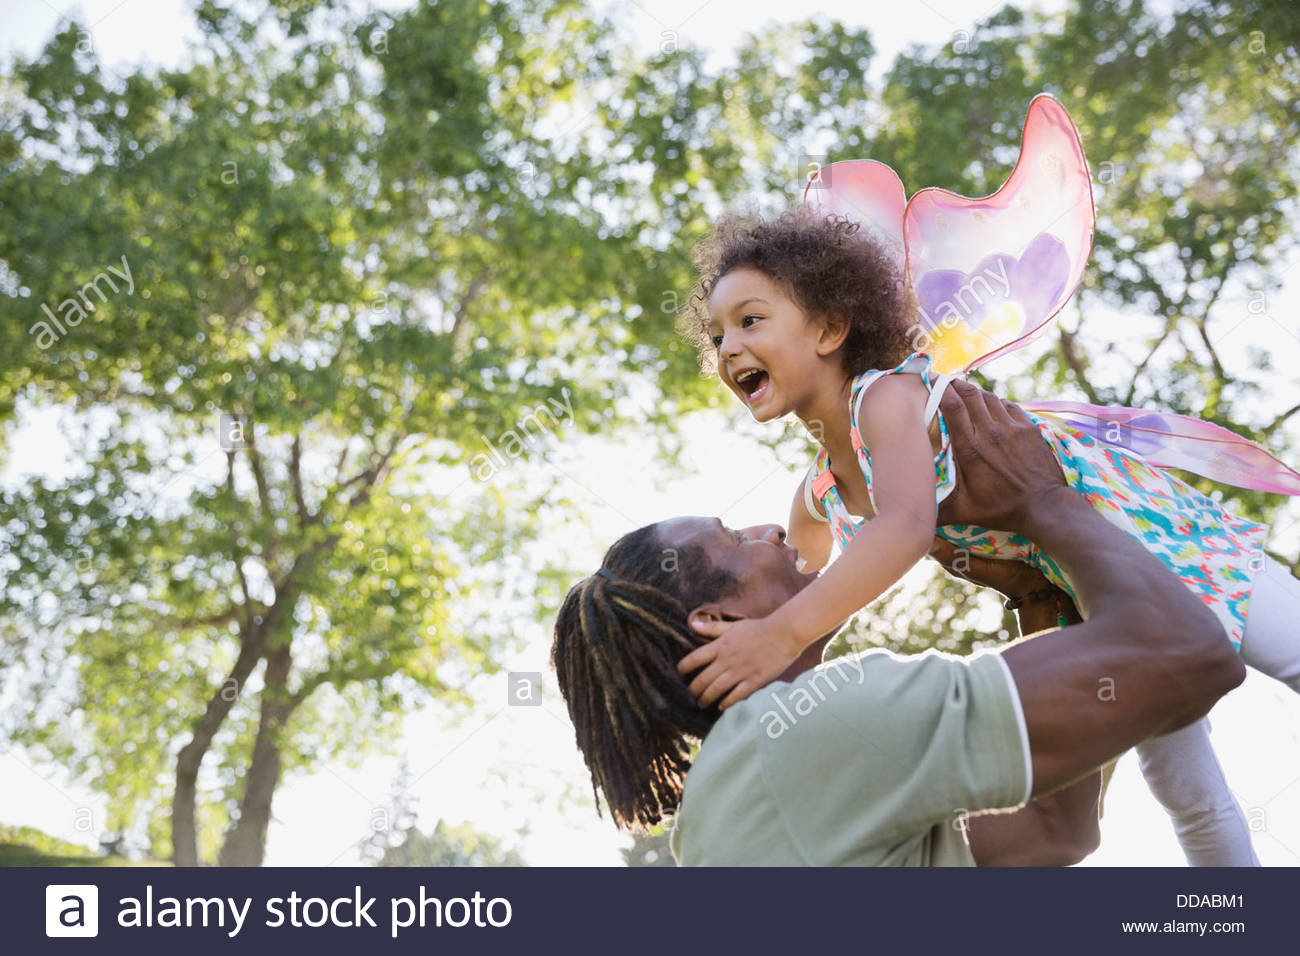 Cheerful man picking up daughter outdoors - Stock Image